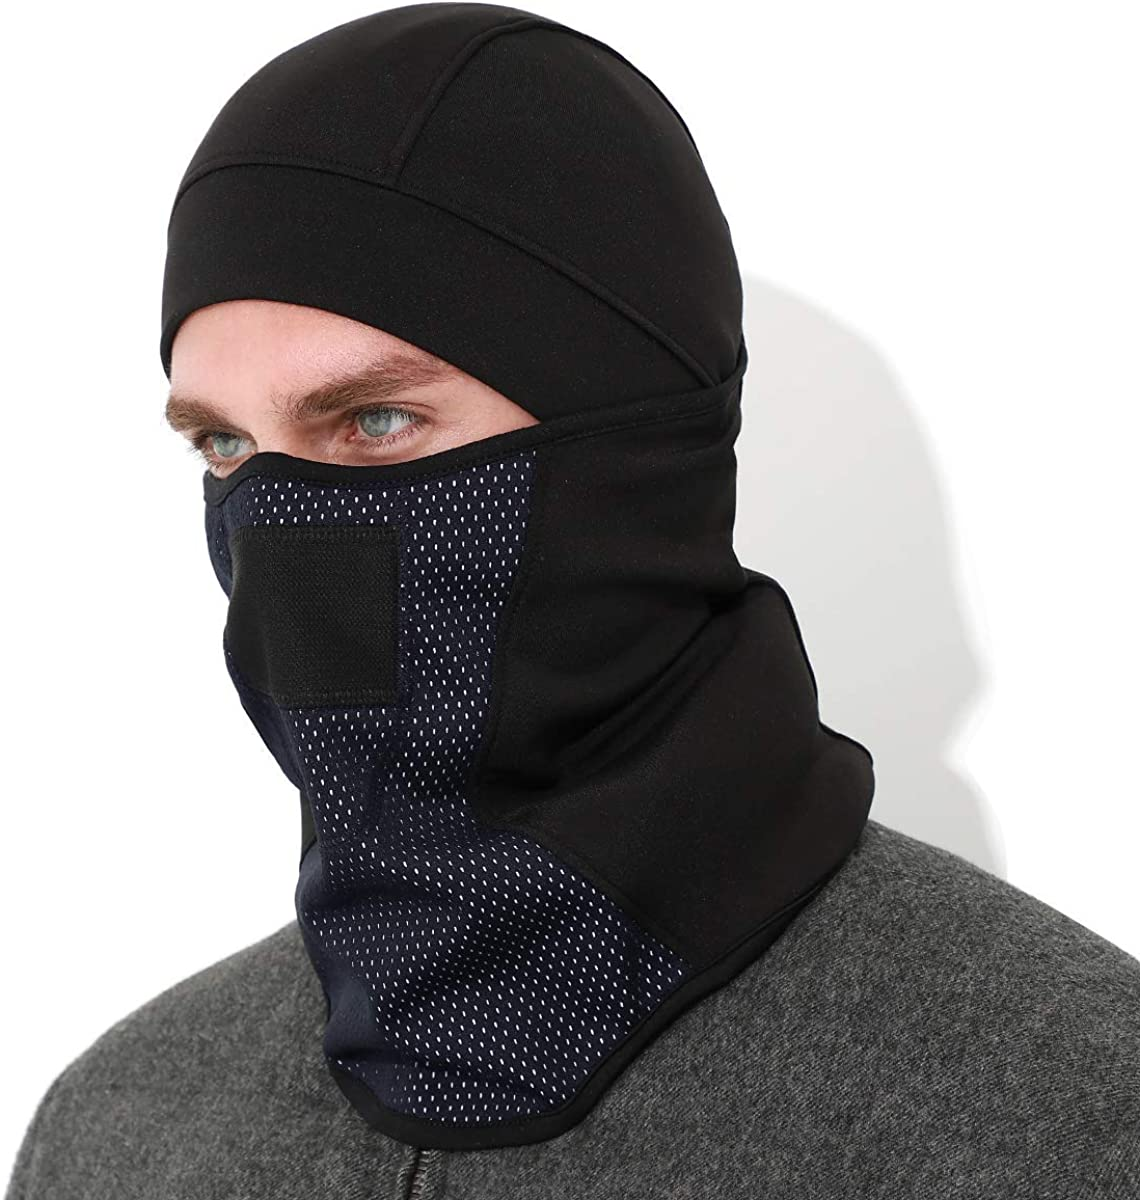 Balaclava Face Sun Mask and UV Protection Cooling Arm Sleeves for Men//Women Outdoor Face Mask,Neck Gaiter